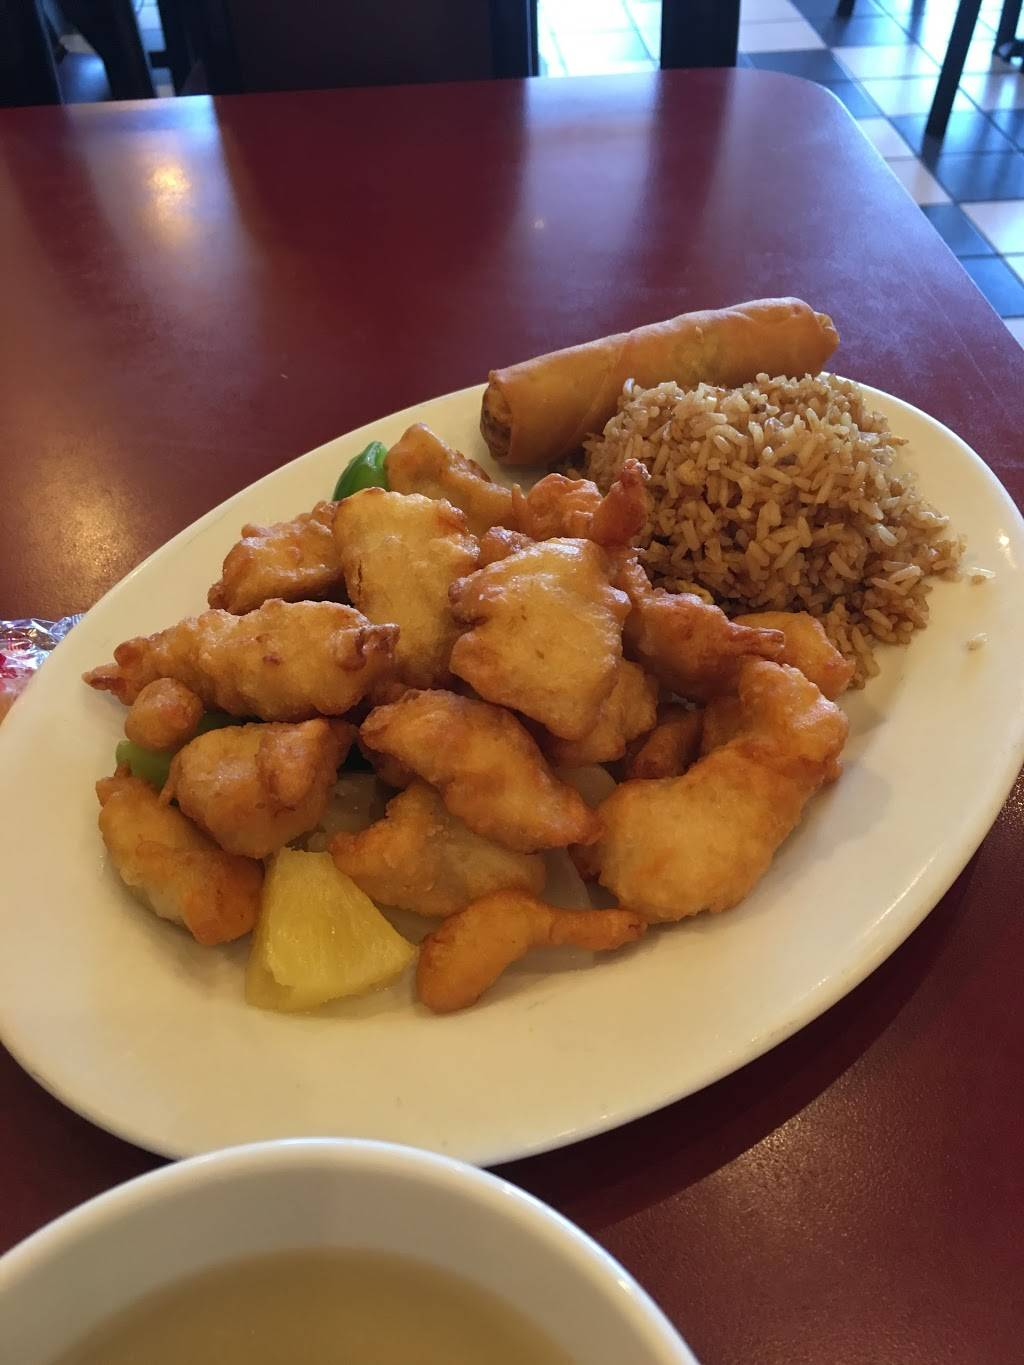 Tian An Men Square Wok & Grill | meal delivery | 210 Central Expy S #76, Allen, TX 75013, USA | 9727477888 OR +1 972-747-7888